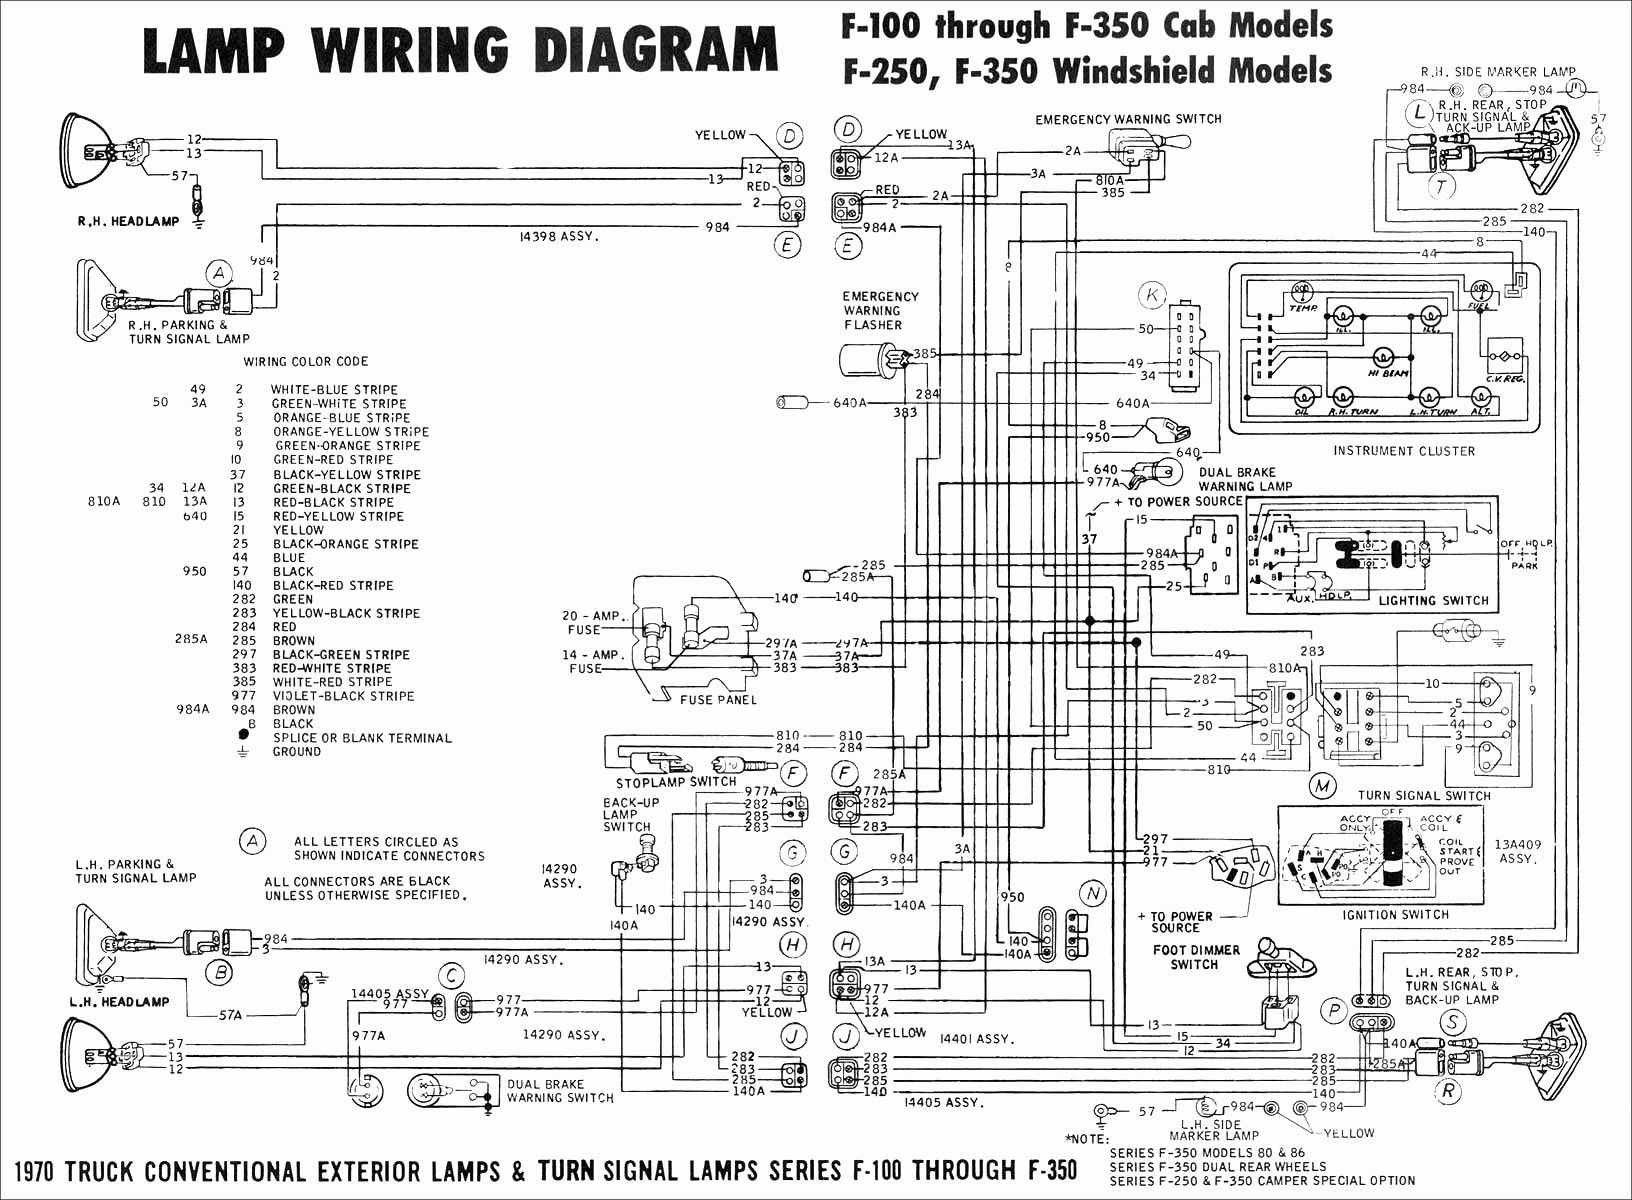 35 Ford Head Light Switch Wiring Diagram Bookingritzcarlton Info Trailer Wiring Diagram Electrical Diagram Electrical Wiring Diagram